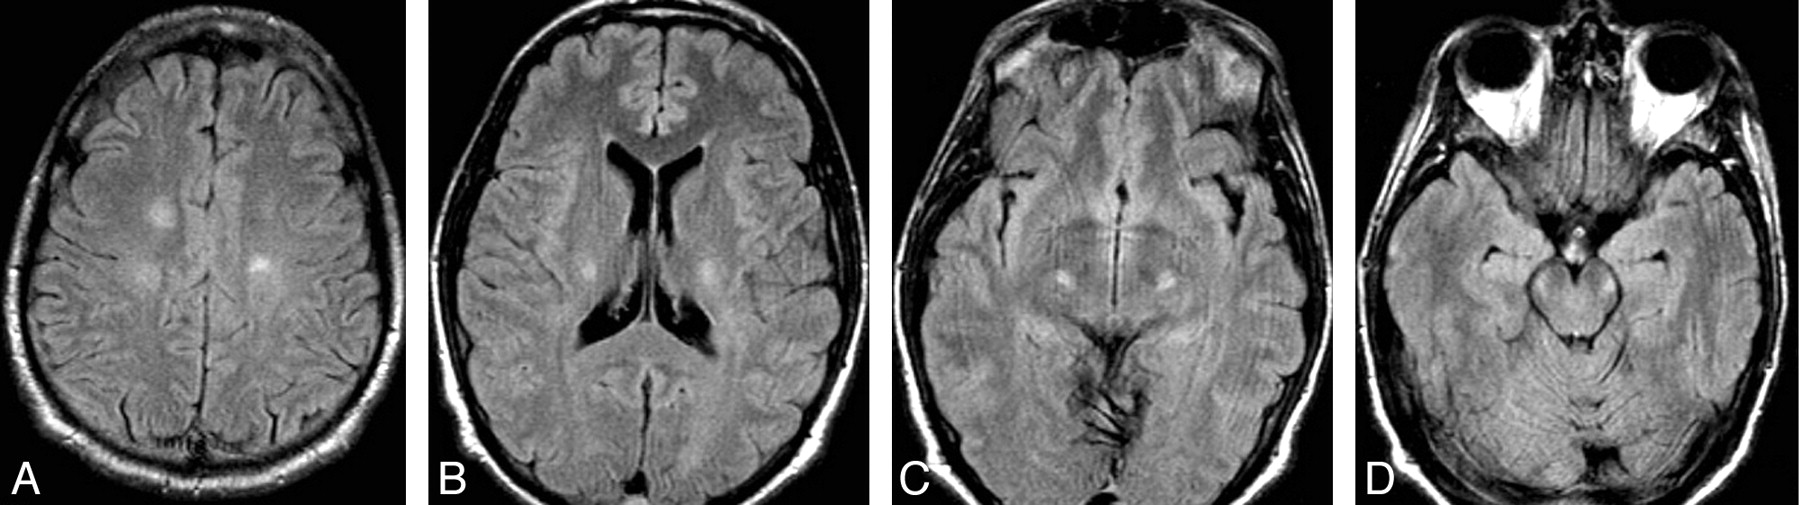 white matter lesions suggestive of amyotrophic lateral sclerosis